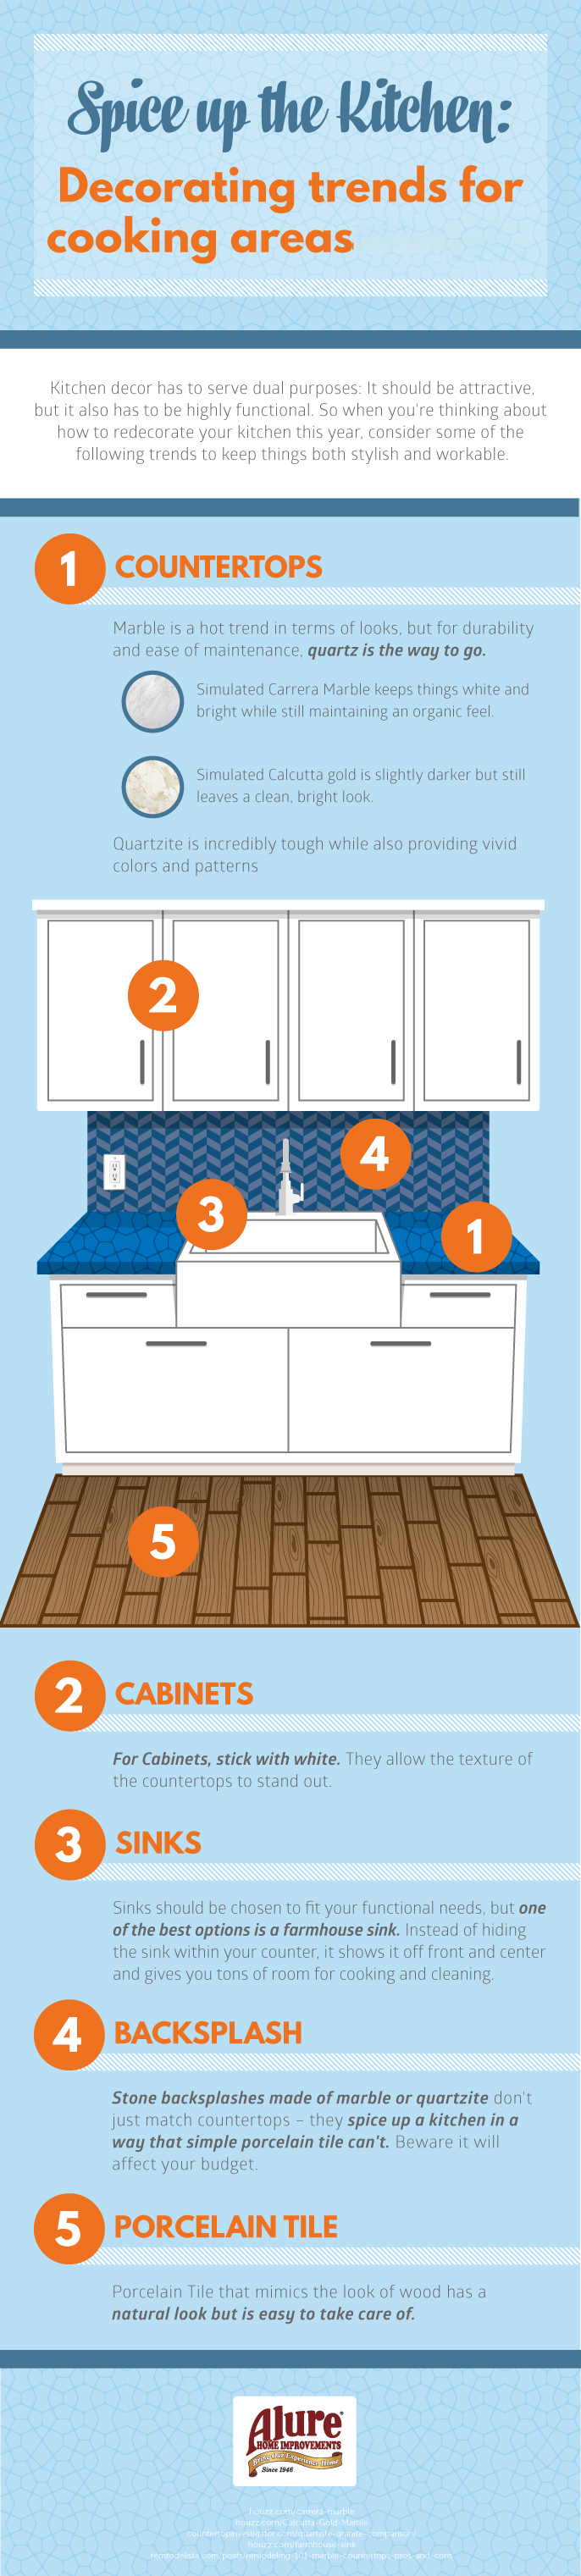 Decorating Trends For Cooking Areas Infographic